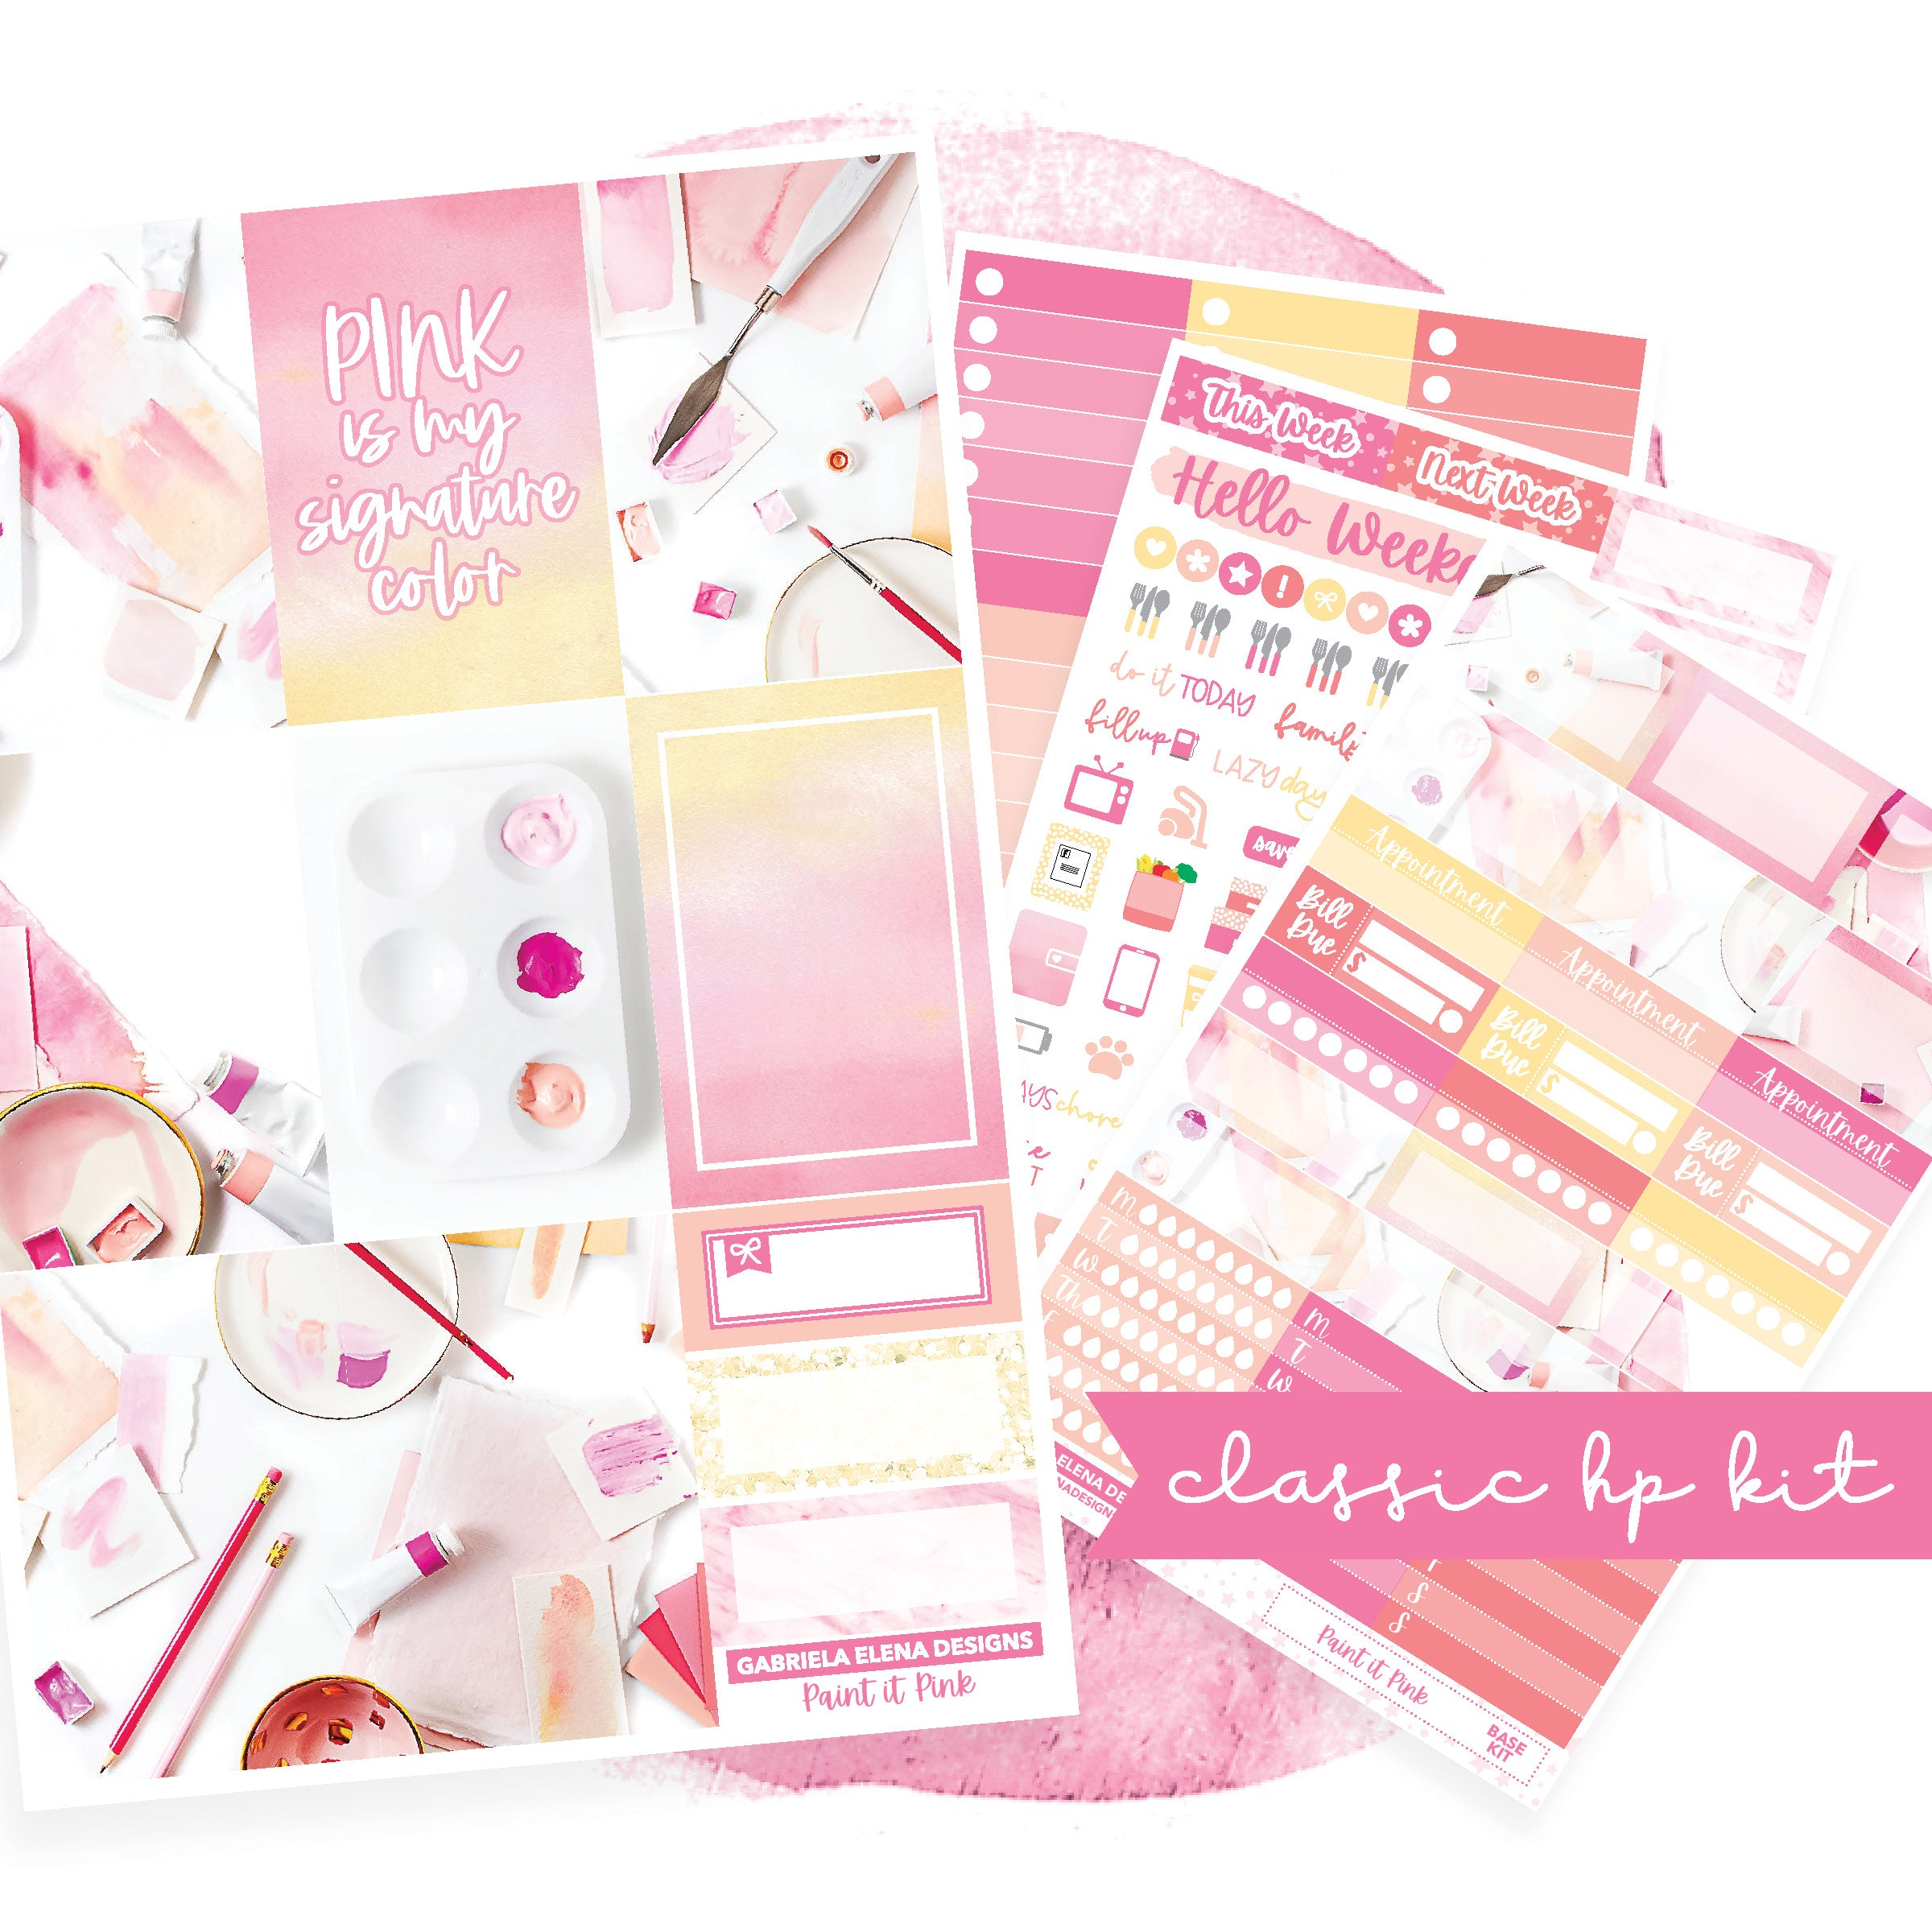 Paint it Pink / Photo Series // CLASSIC HAPPY PLANNER / Sticker Kit